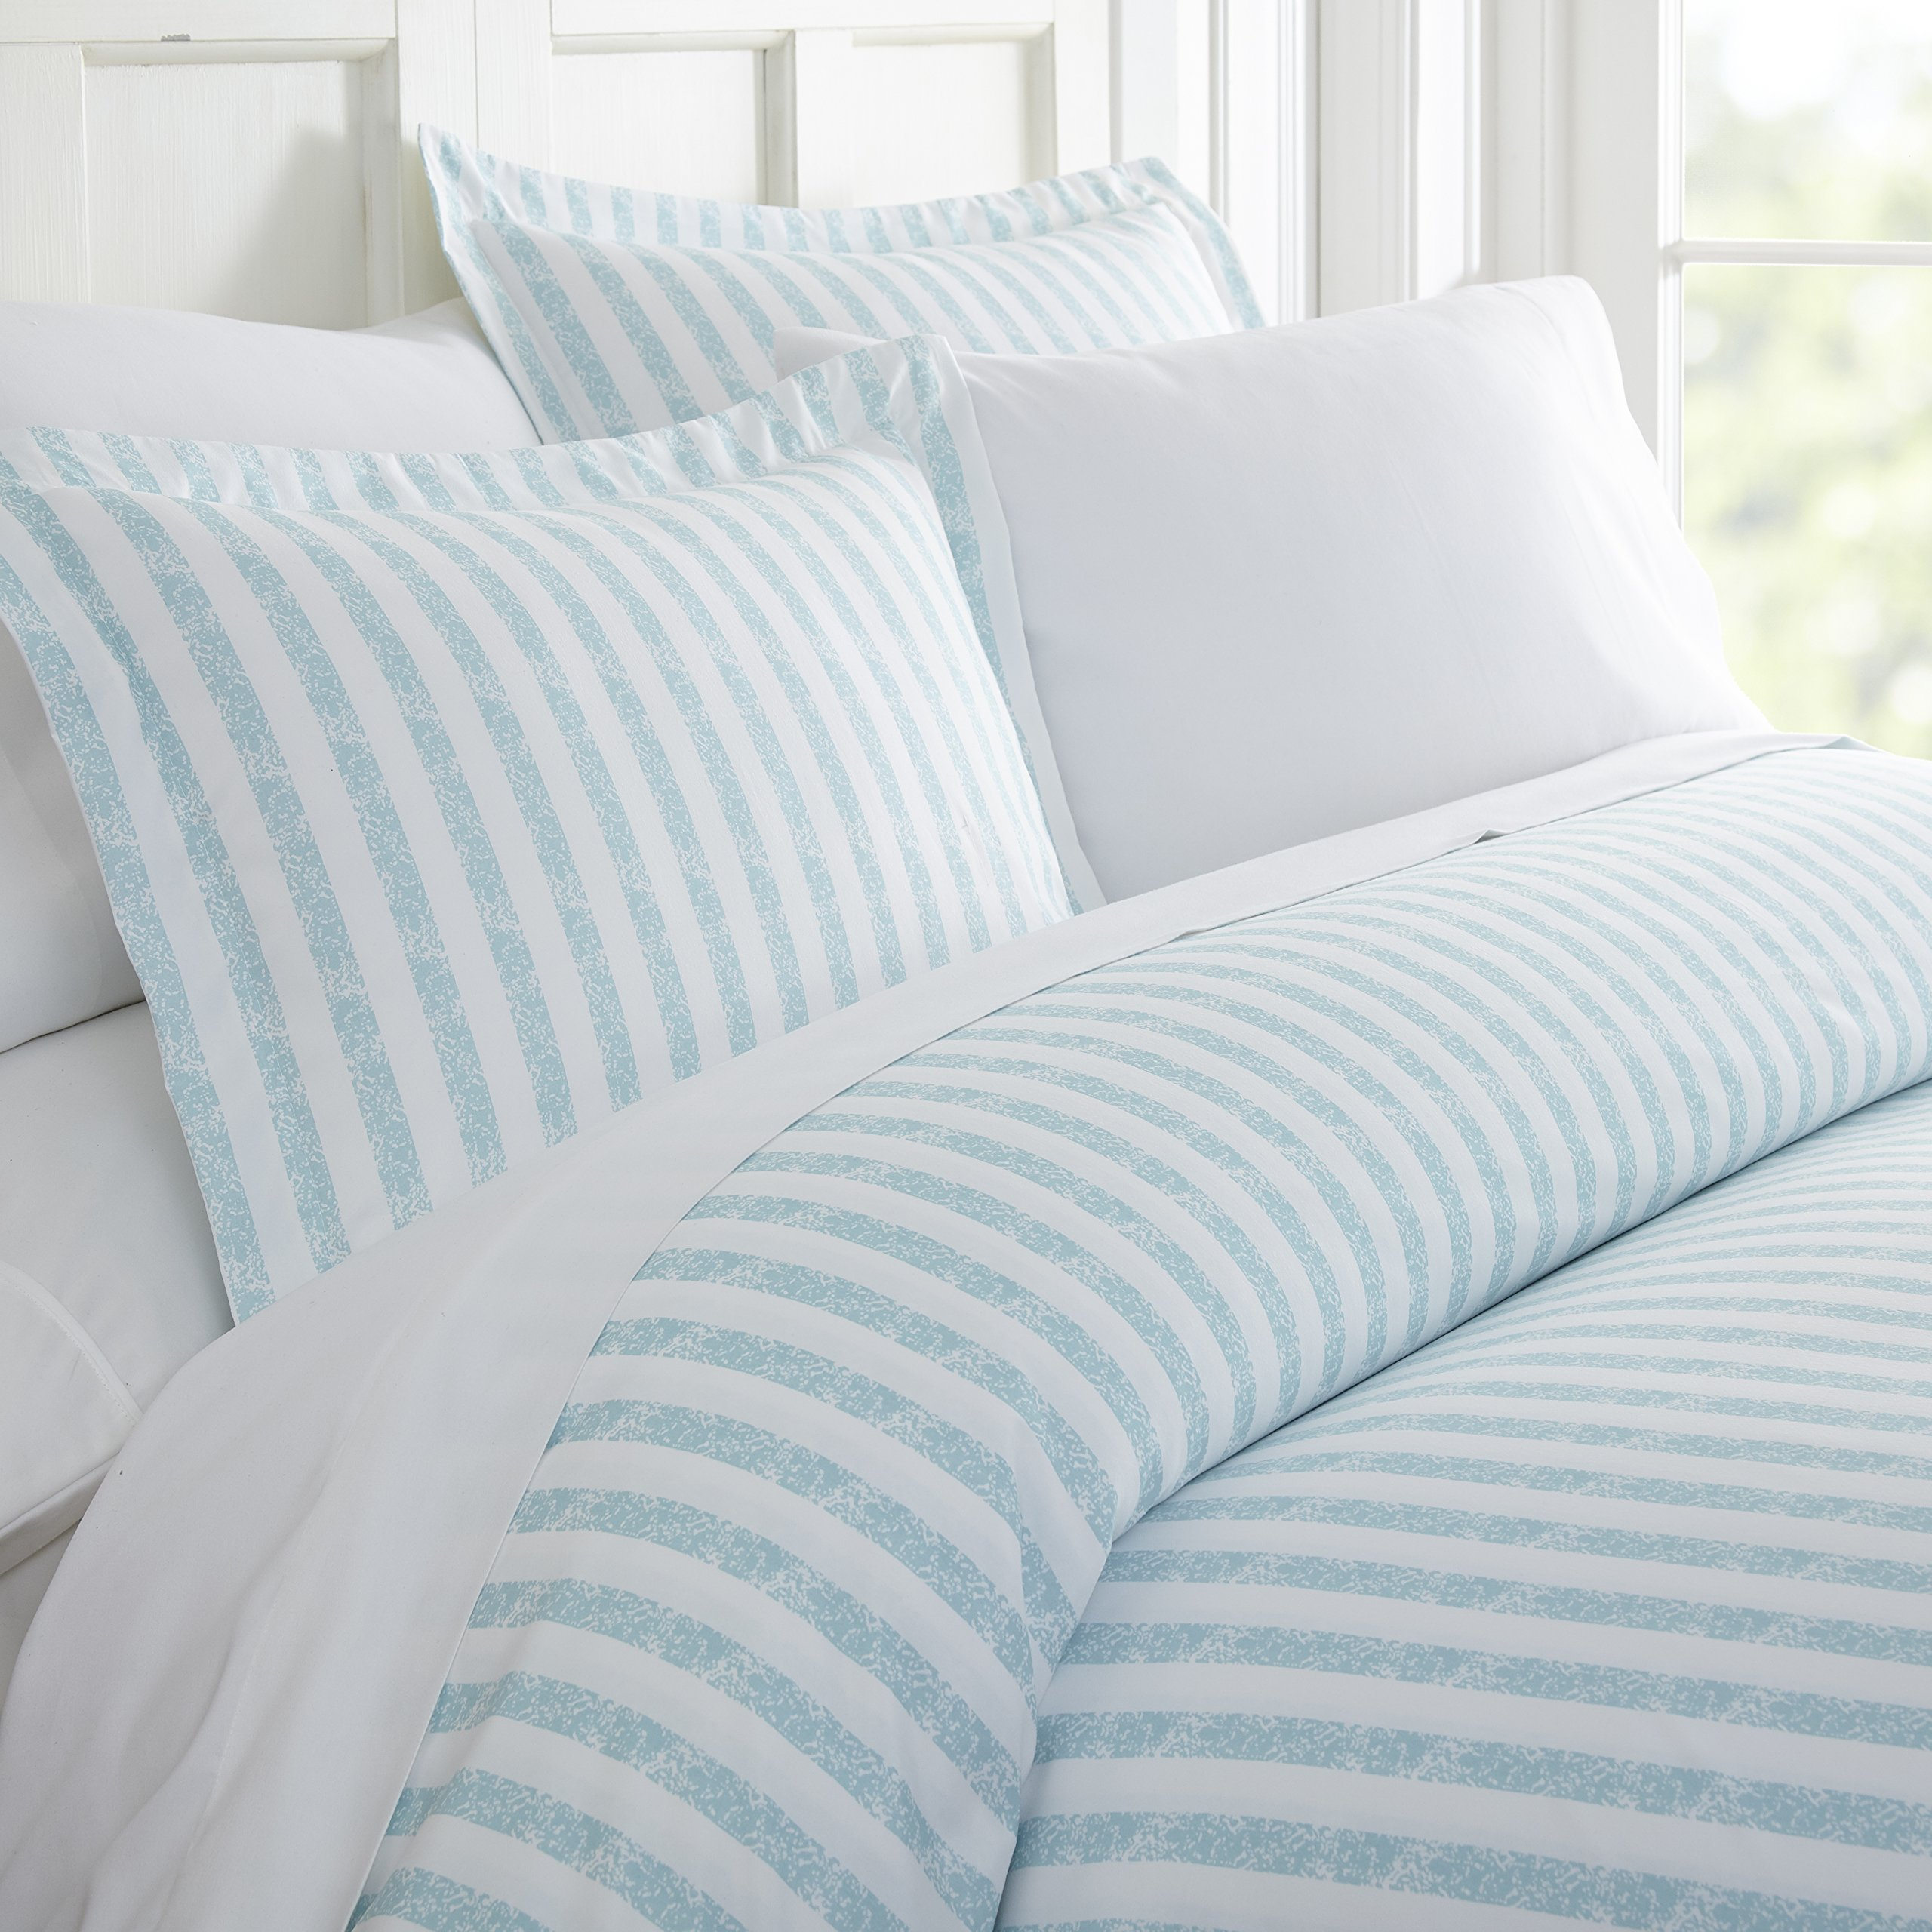 ienjoy Home 3 Piece Rugged Stripes Patterned Home Collection Premium Ultra Soft Duvet Cover Set, King, Light Blue